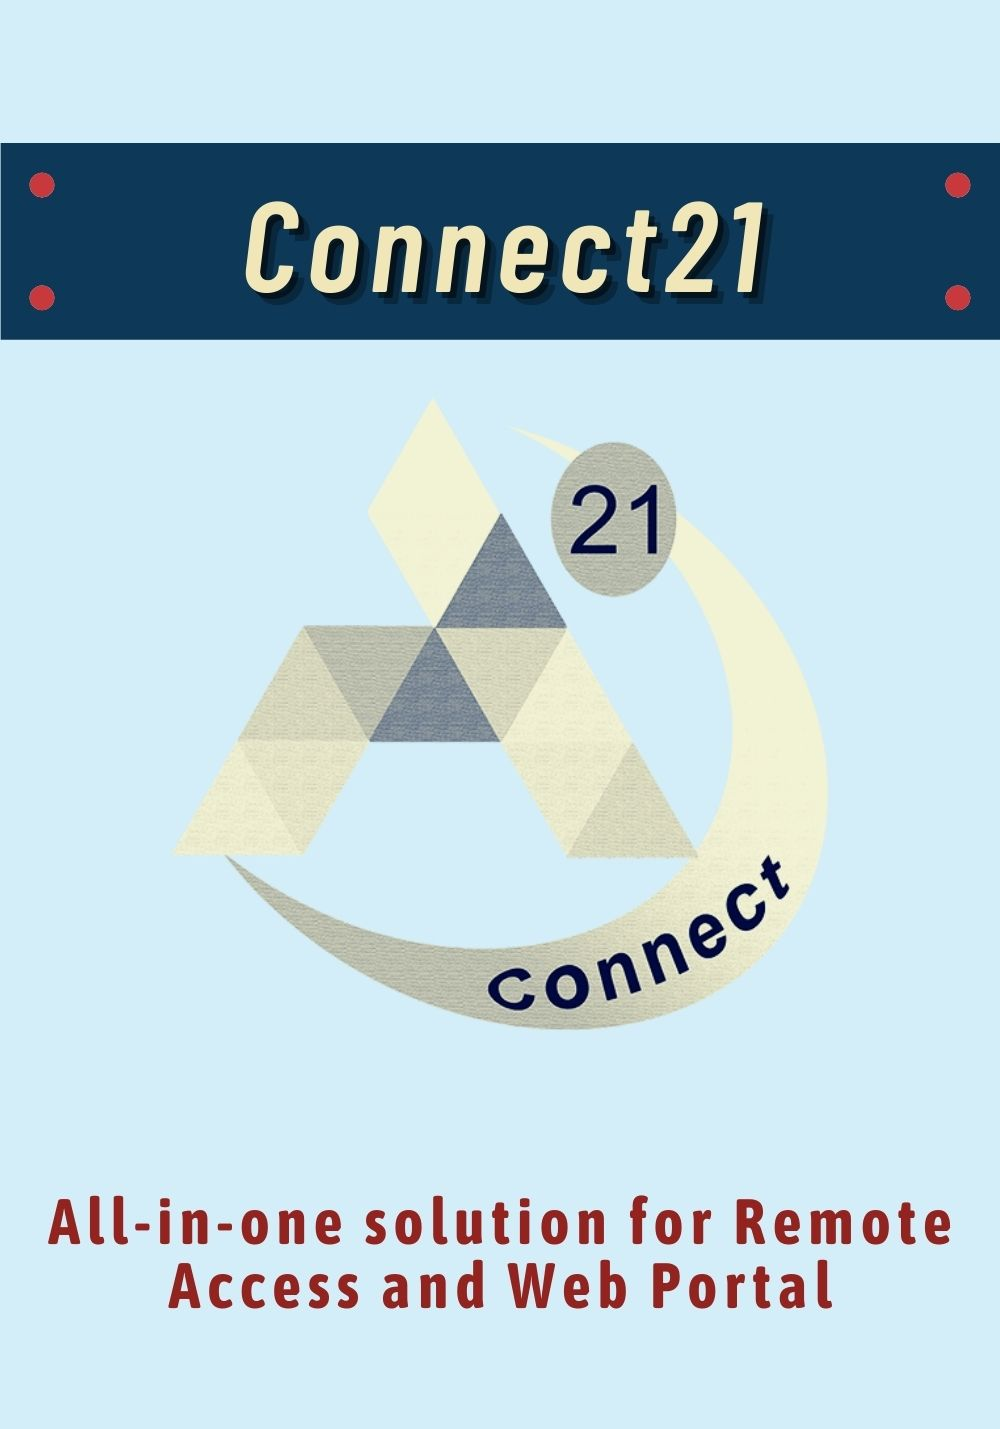 Connect21